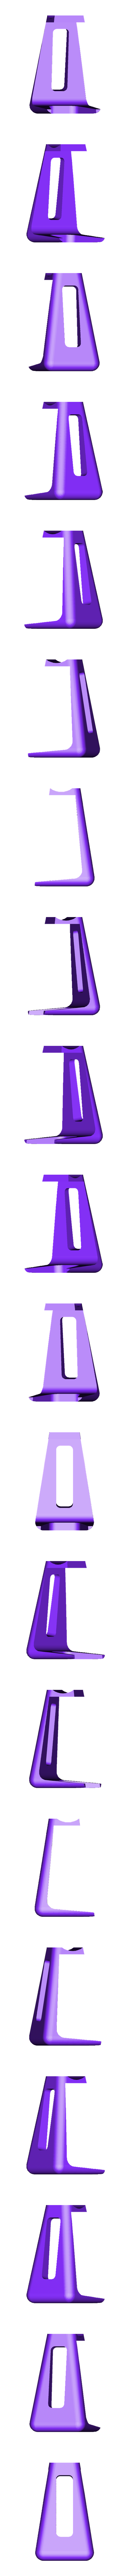 headphone stand.STL Download free STL file Headphone stand • 3D printable object, osayomipeters